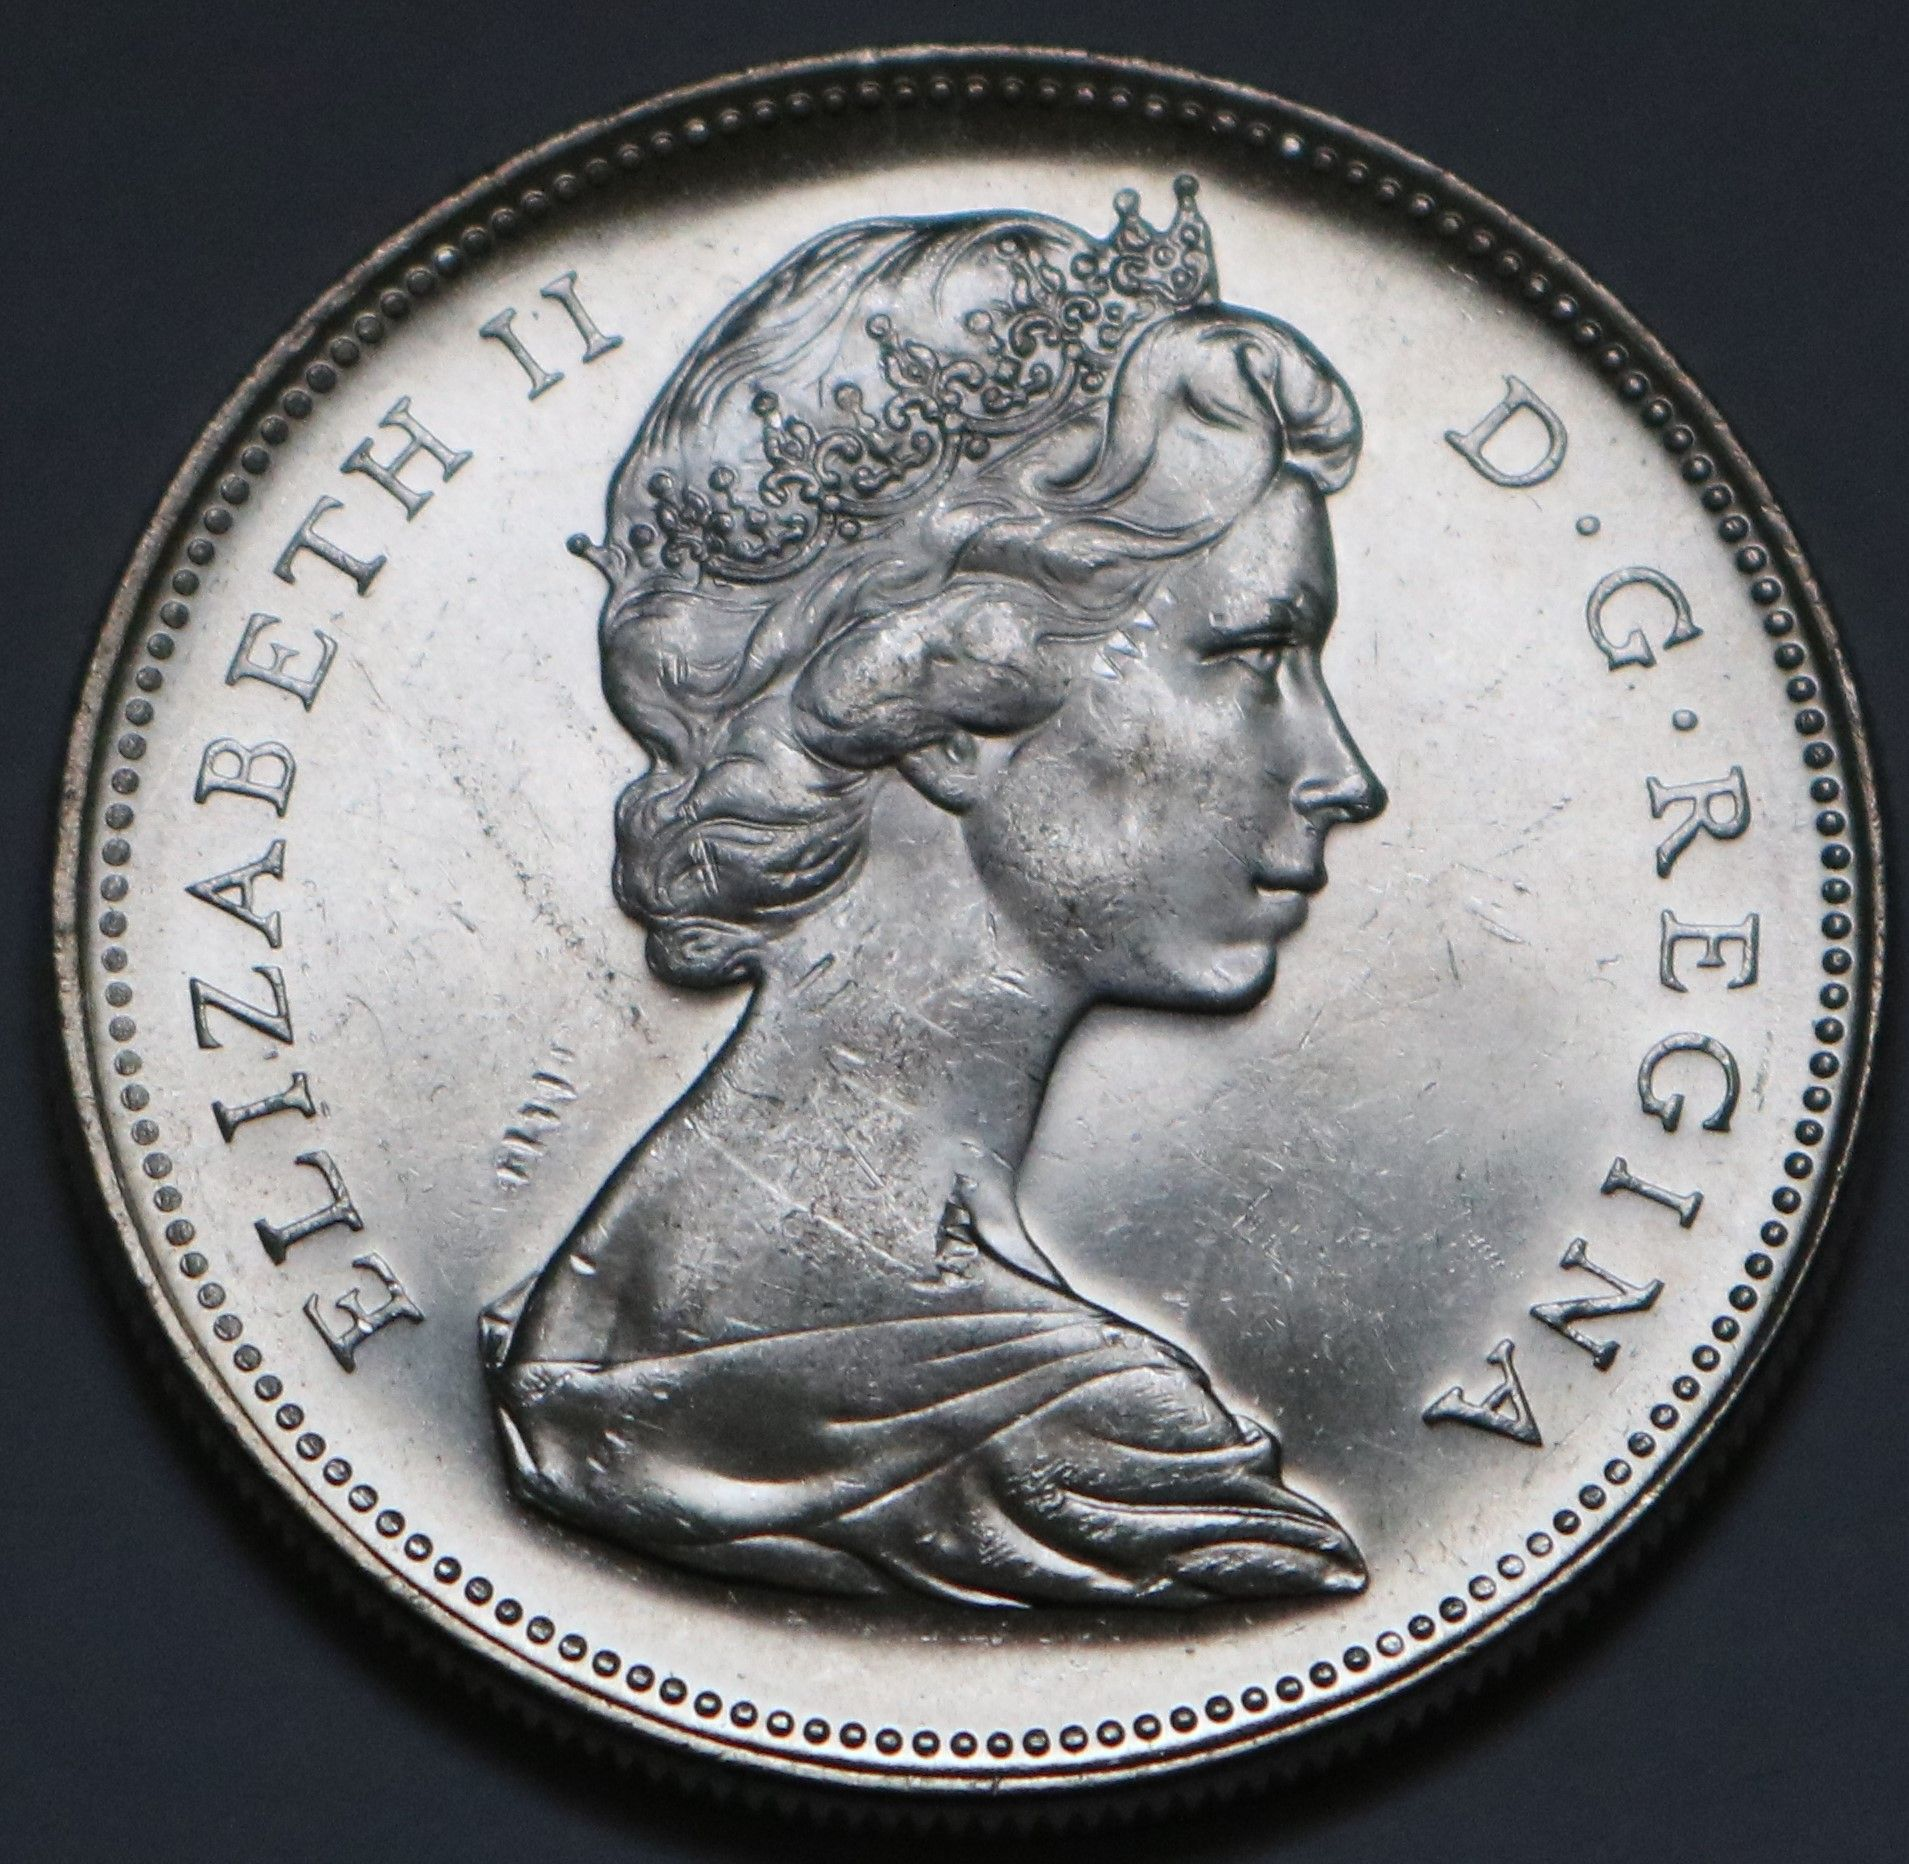 Details About 1966 Canada Large Beads Silver Dollar Coin Saviez Vous Que